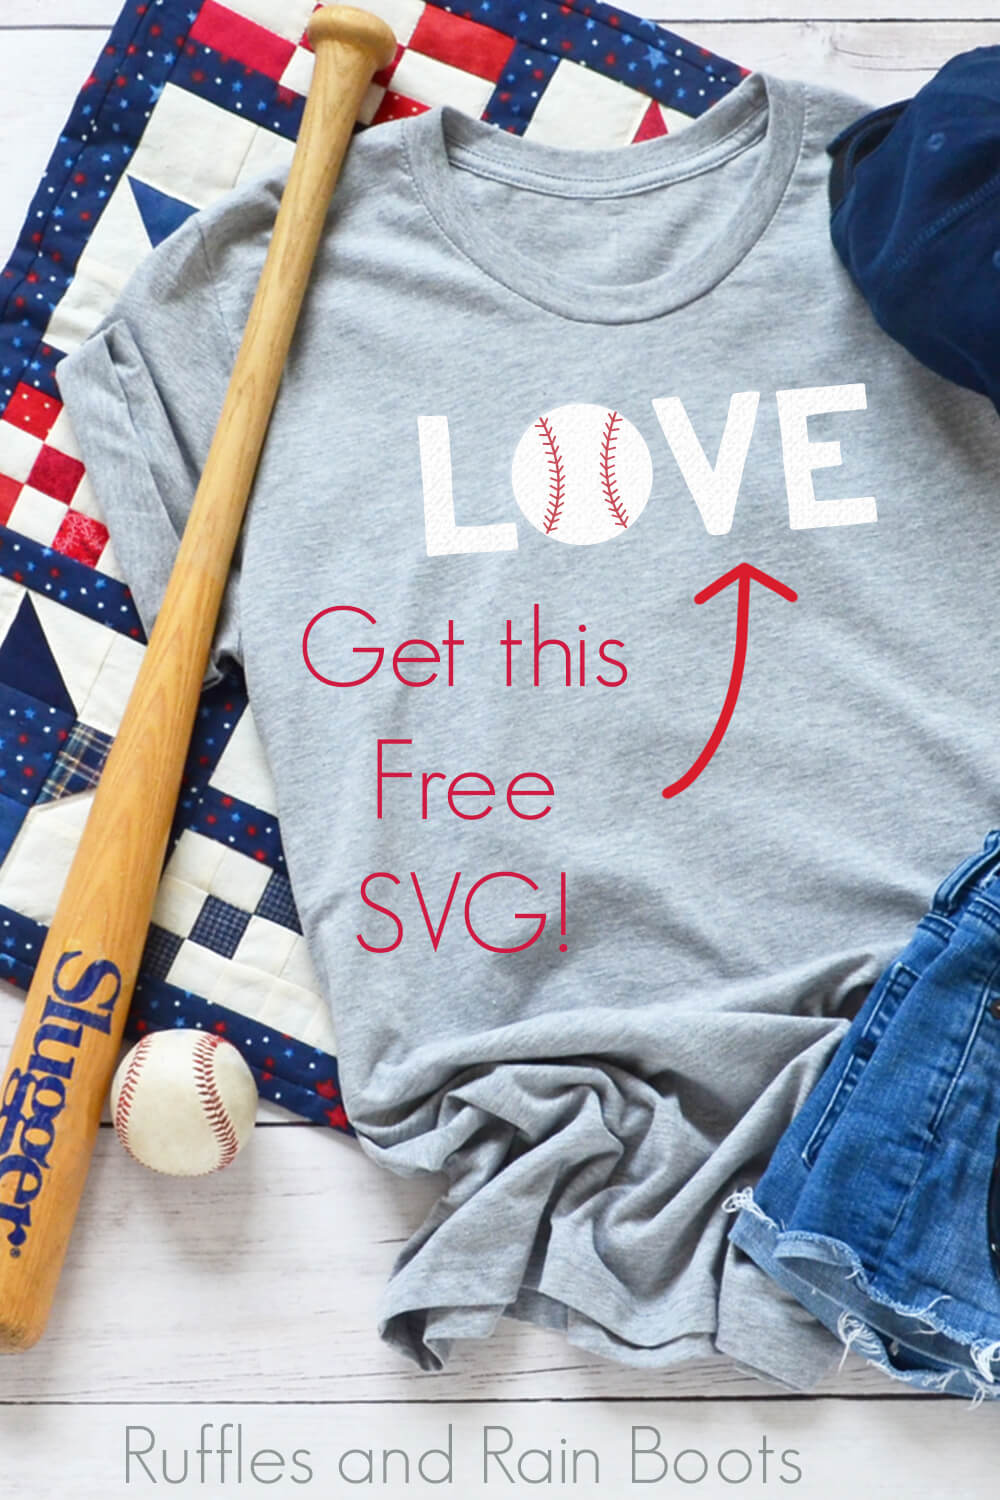 t shirt and baseball bat on quilt background with free LOVE baseball SVG with text that says get this free svg